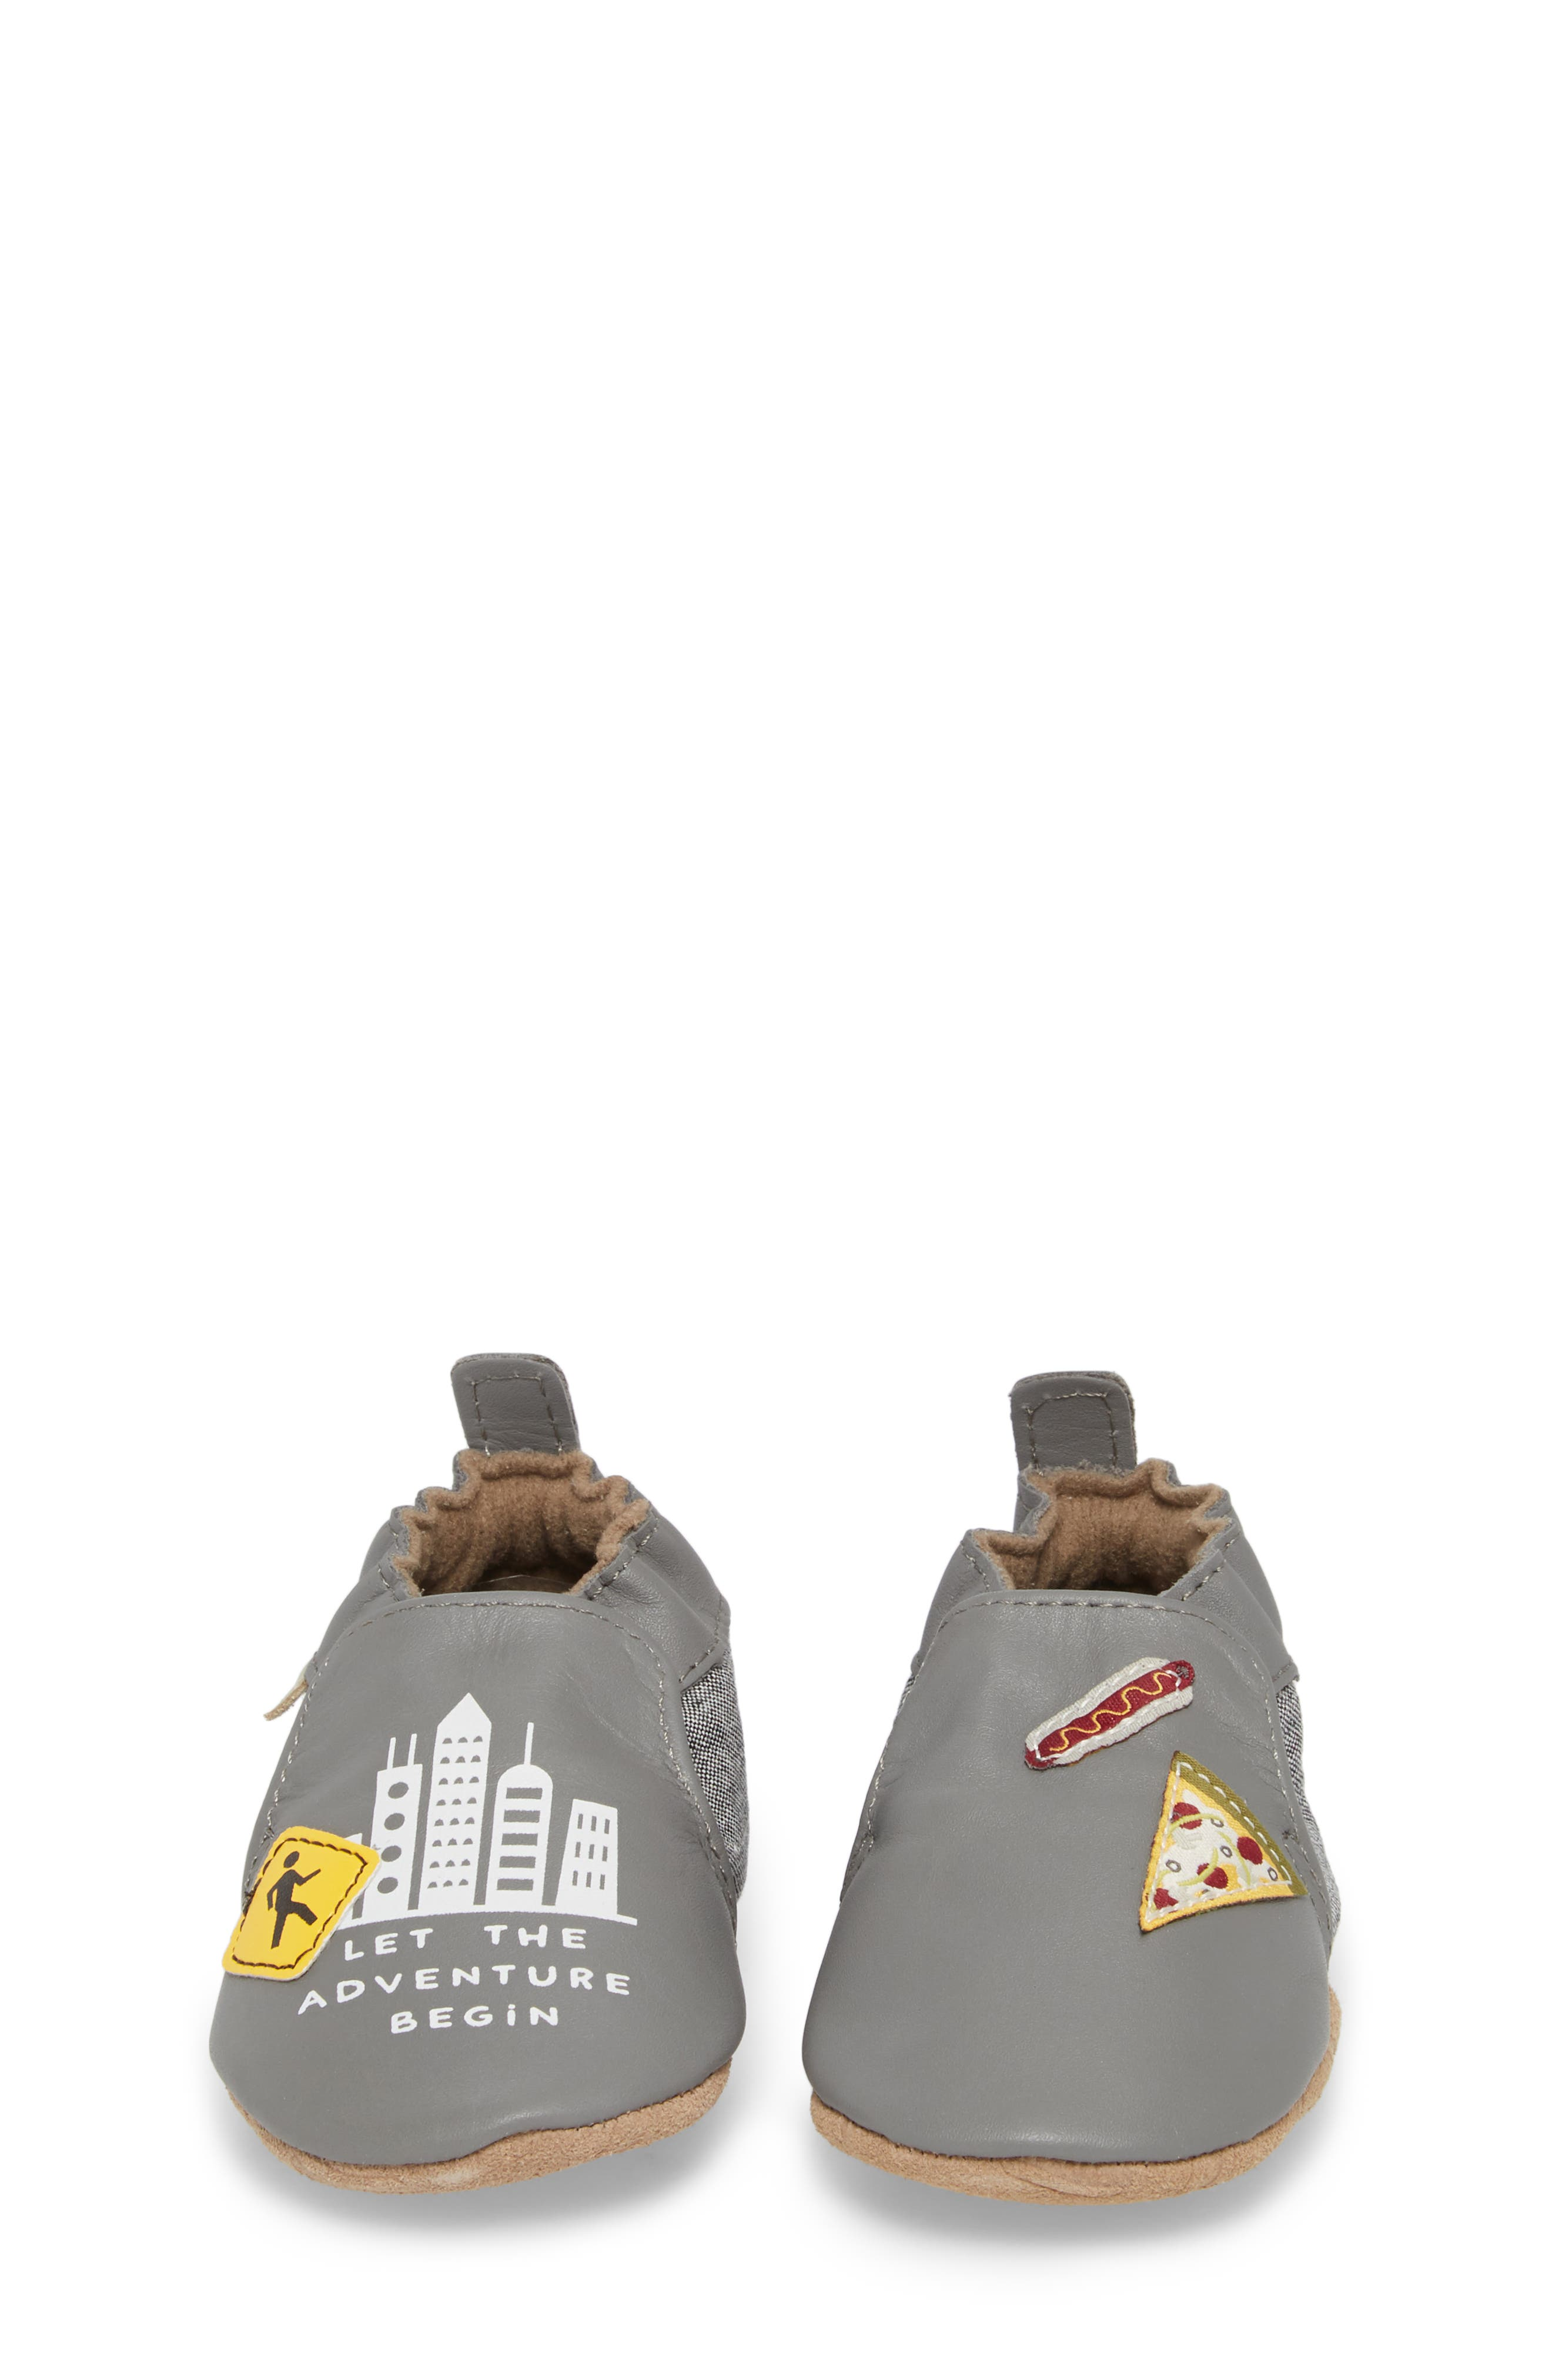 City Life Moccasin Crib Shoe,                             Alternate thumbnail 5, color,                             Grey